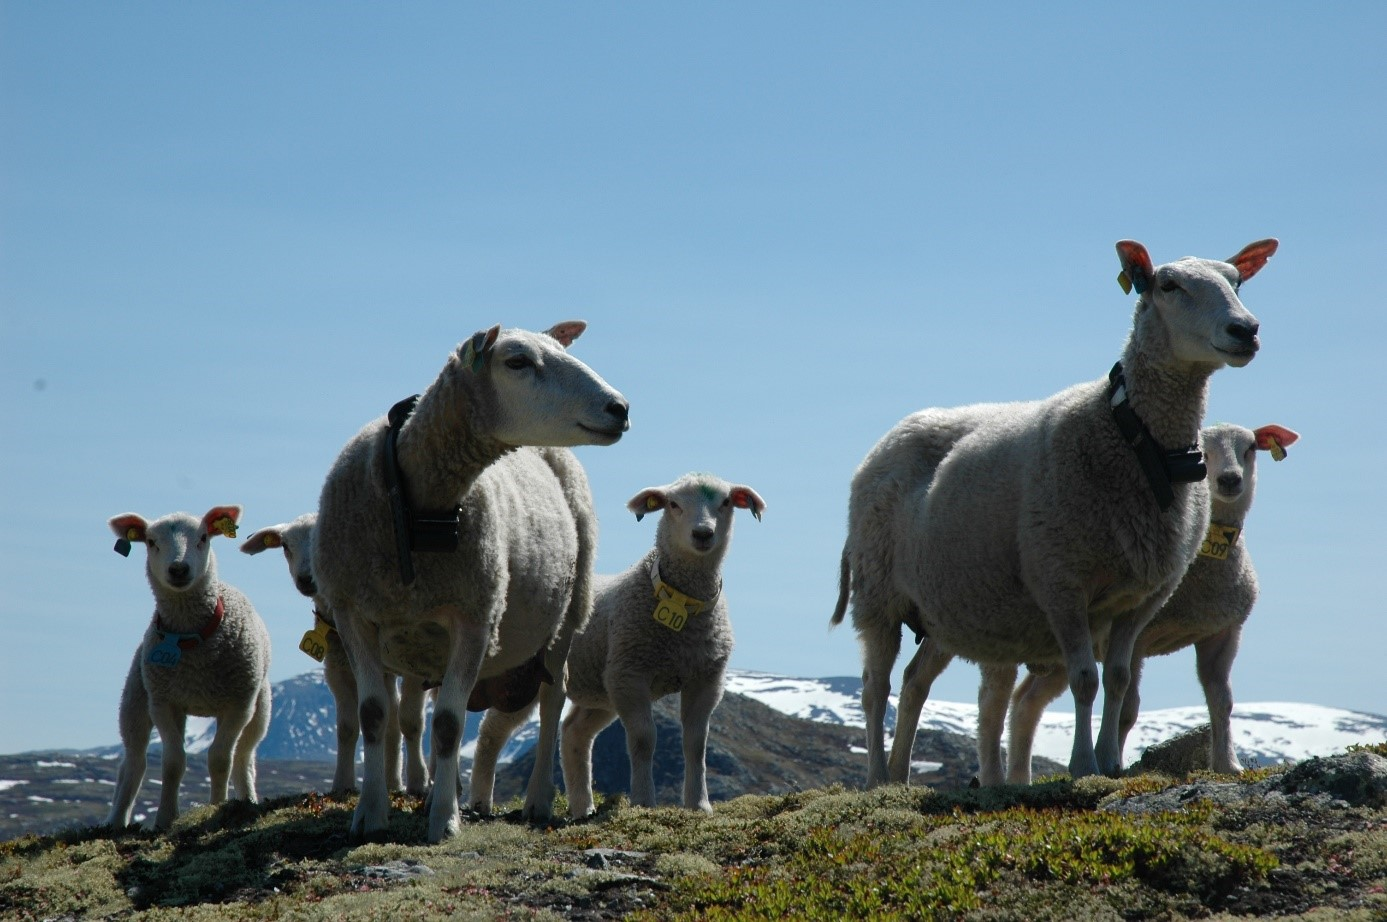 Domestic sheep grazing in alpine tundra of Norway.